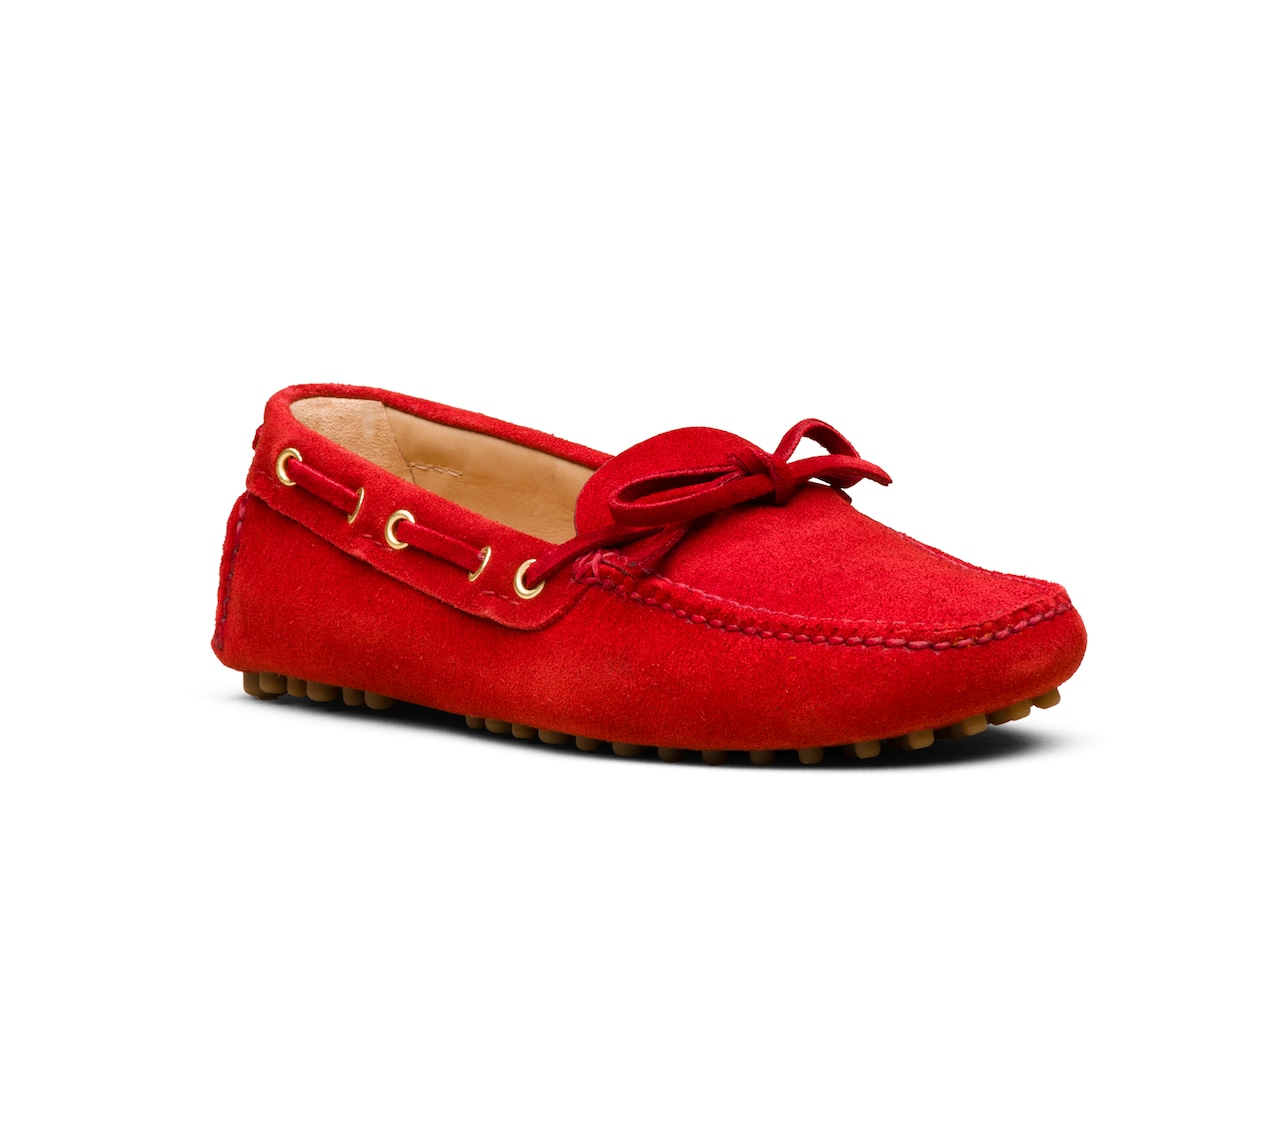 DRIVING SHOES SUEDE RED